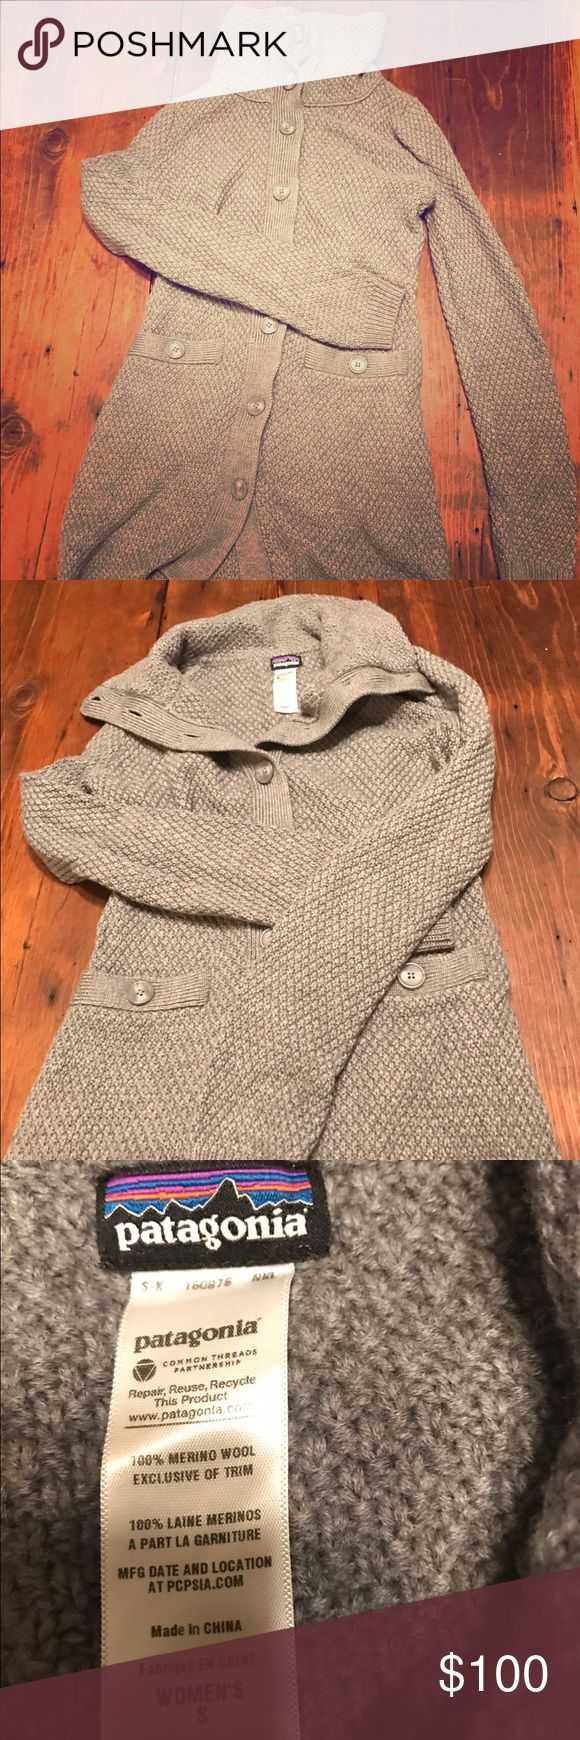 Patagonia sweater long sweater coat Gently worn Patagonia knit sweater coat with pockets Patagonia Sweaters Cardigans